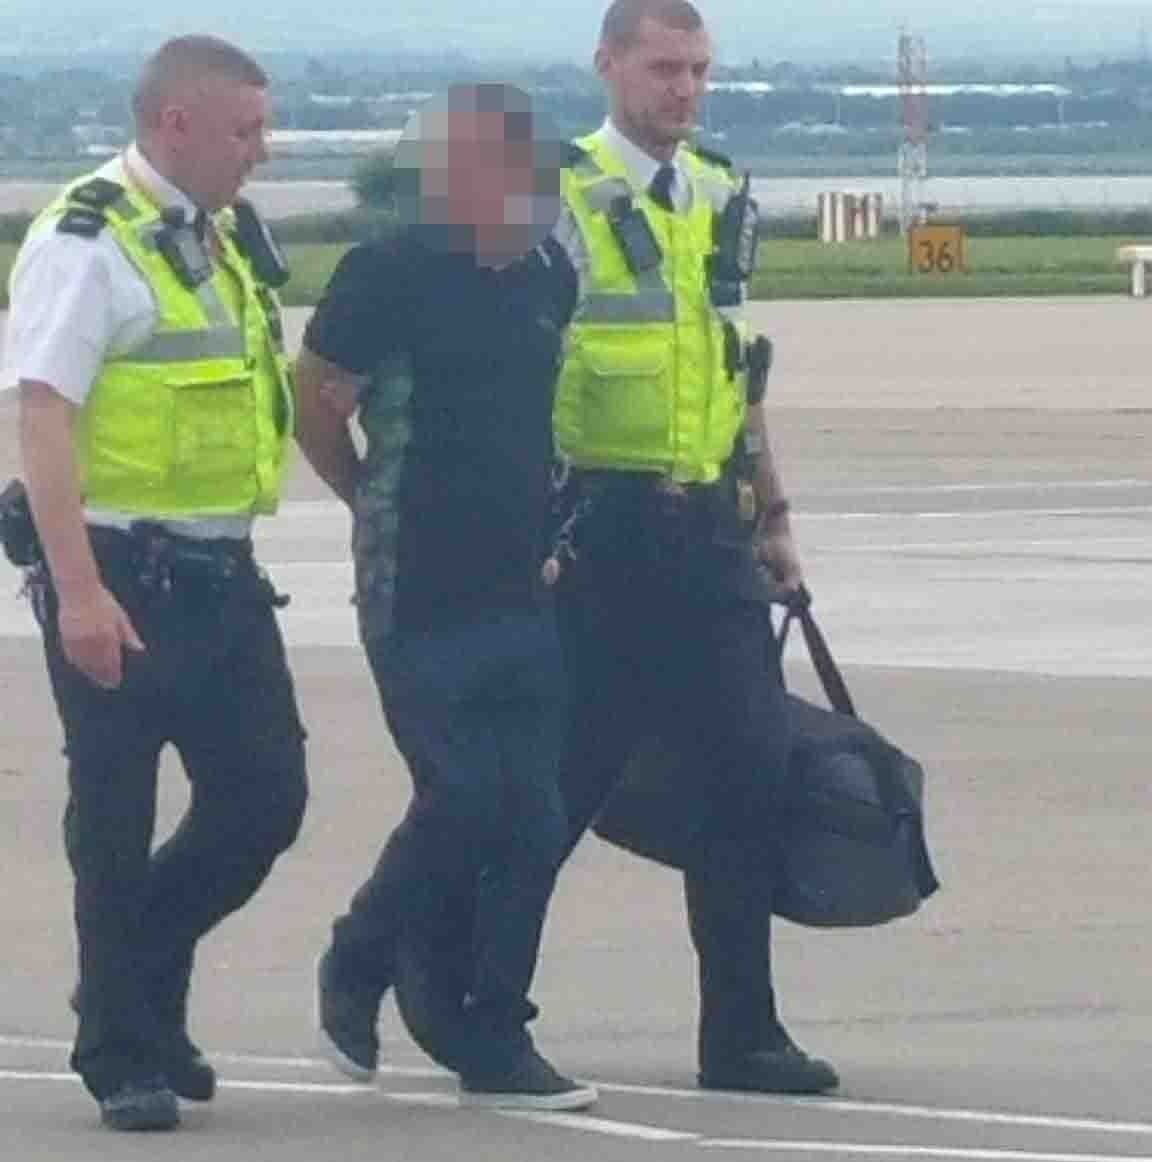 A man was arrested at John Lennon Airport after he was reported to be drunk and disorderly on a flight from Alicante.nMerseyside police were called to the airport at around 1pm, in response to reports that a male passenger was being disruptive on board.nA 53-year-old man from West Derby was arrested on suspicion of being drunk on an aircraft and has been taken in for questioning.nOne eye-witness who contacted the ECHO says the man allegedly ¿belched at another passenger and then fell onto a small child¿.nnA man has been arrested at John Lennon Airport after he was reported to be drunk and disordely on a flight from Alicante.